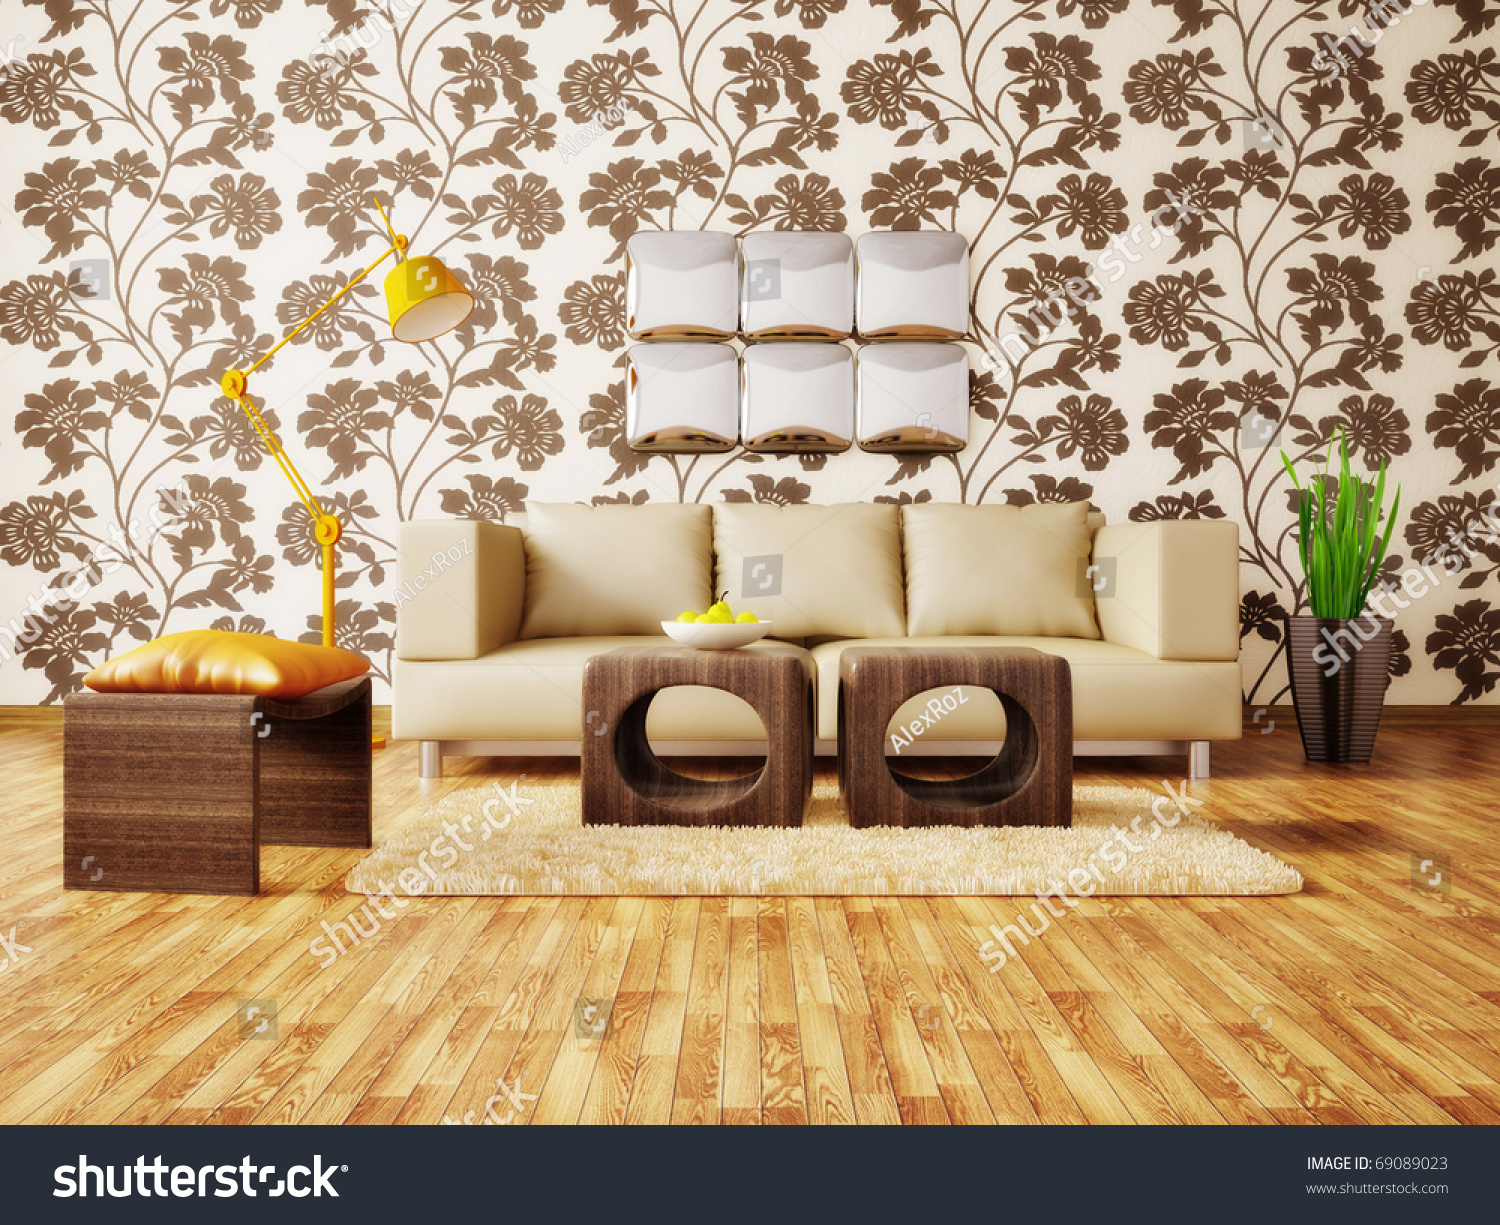 Modern interior room with nice furniture inside stock photo 69089023 shutterstock - Nice interior pic ...